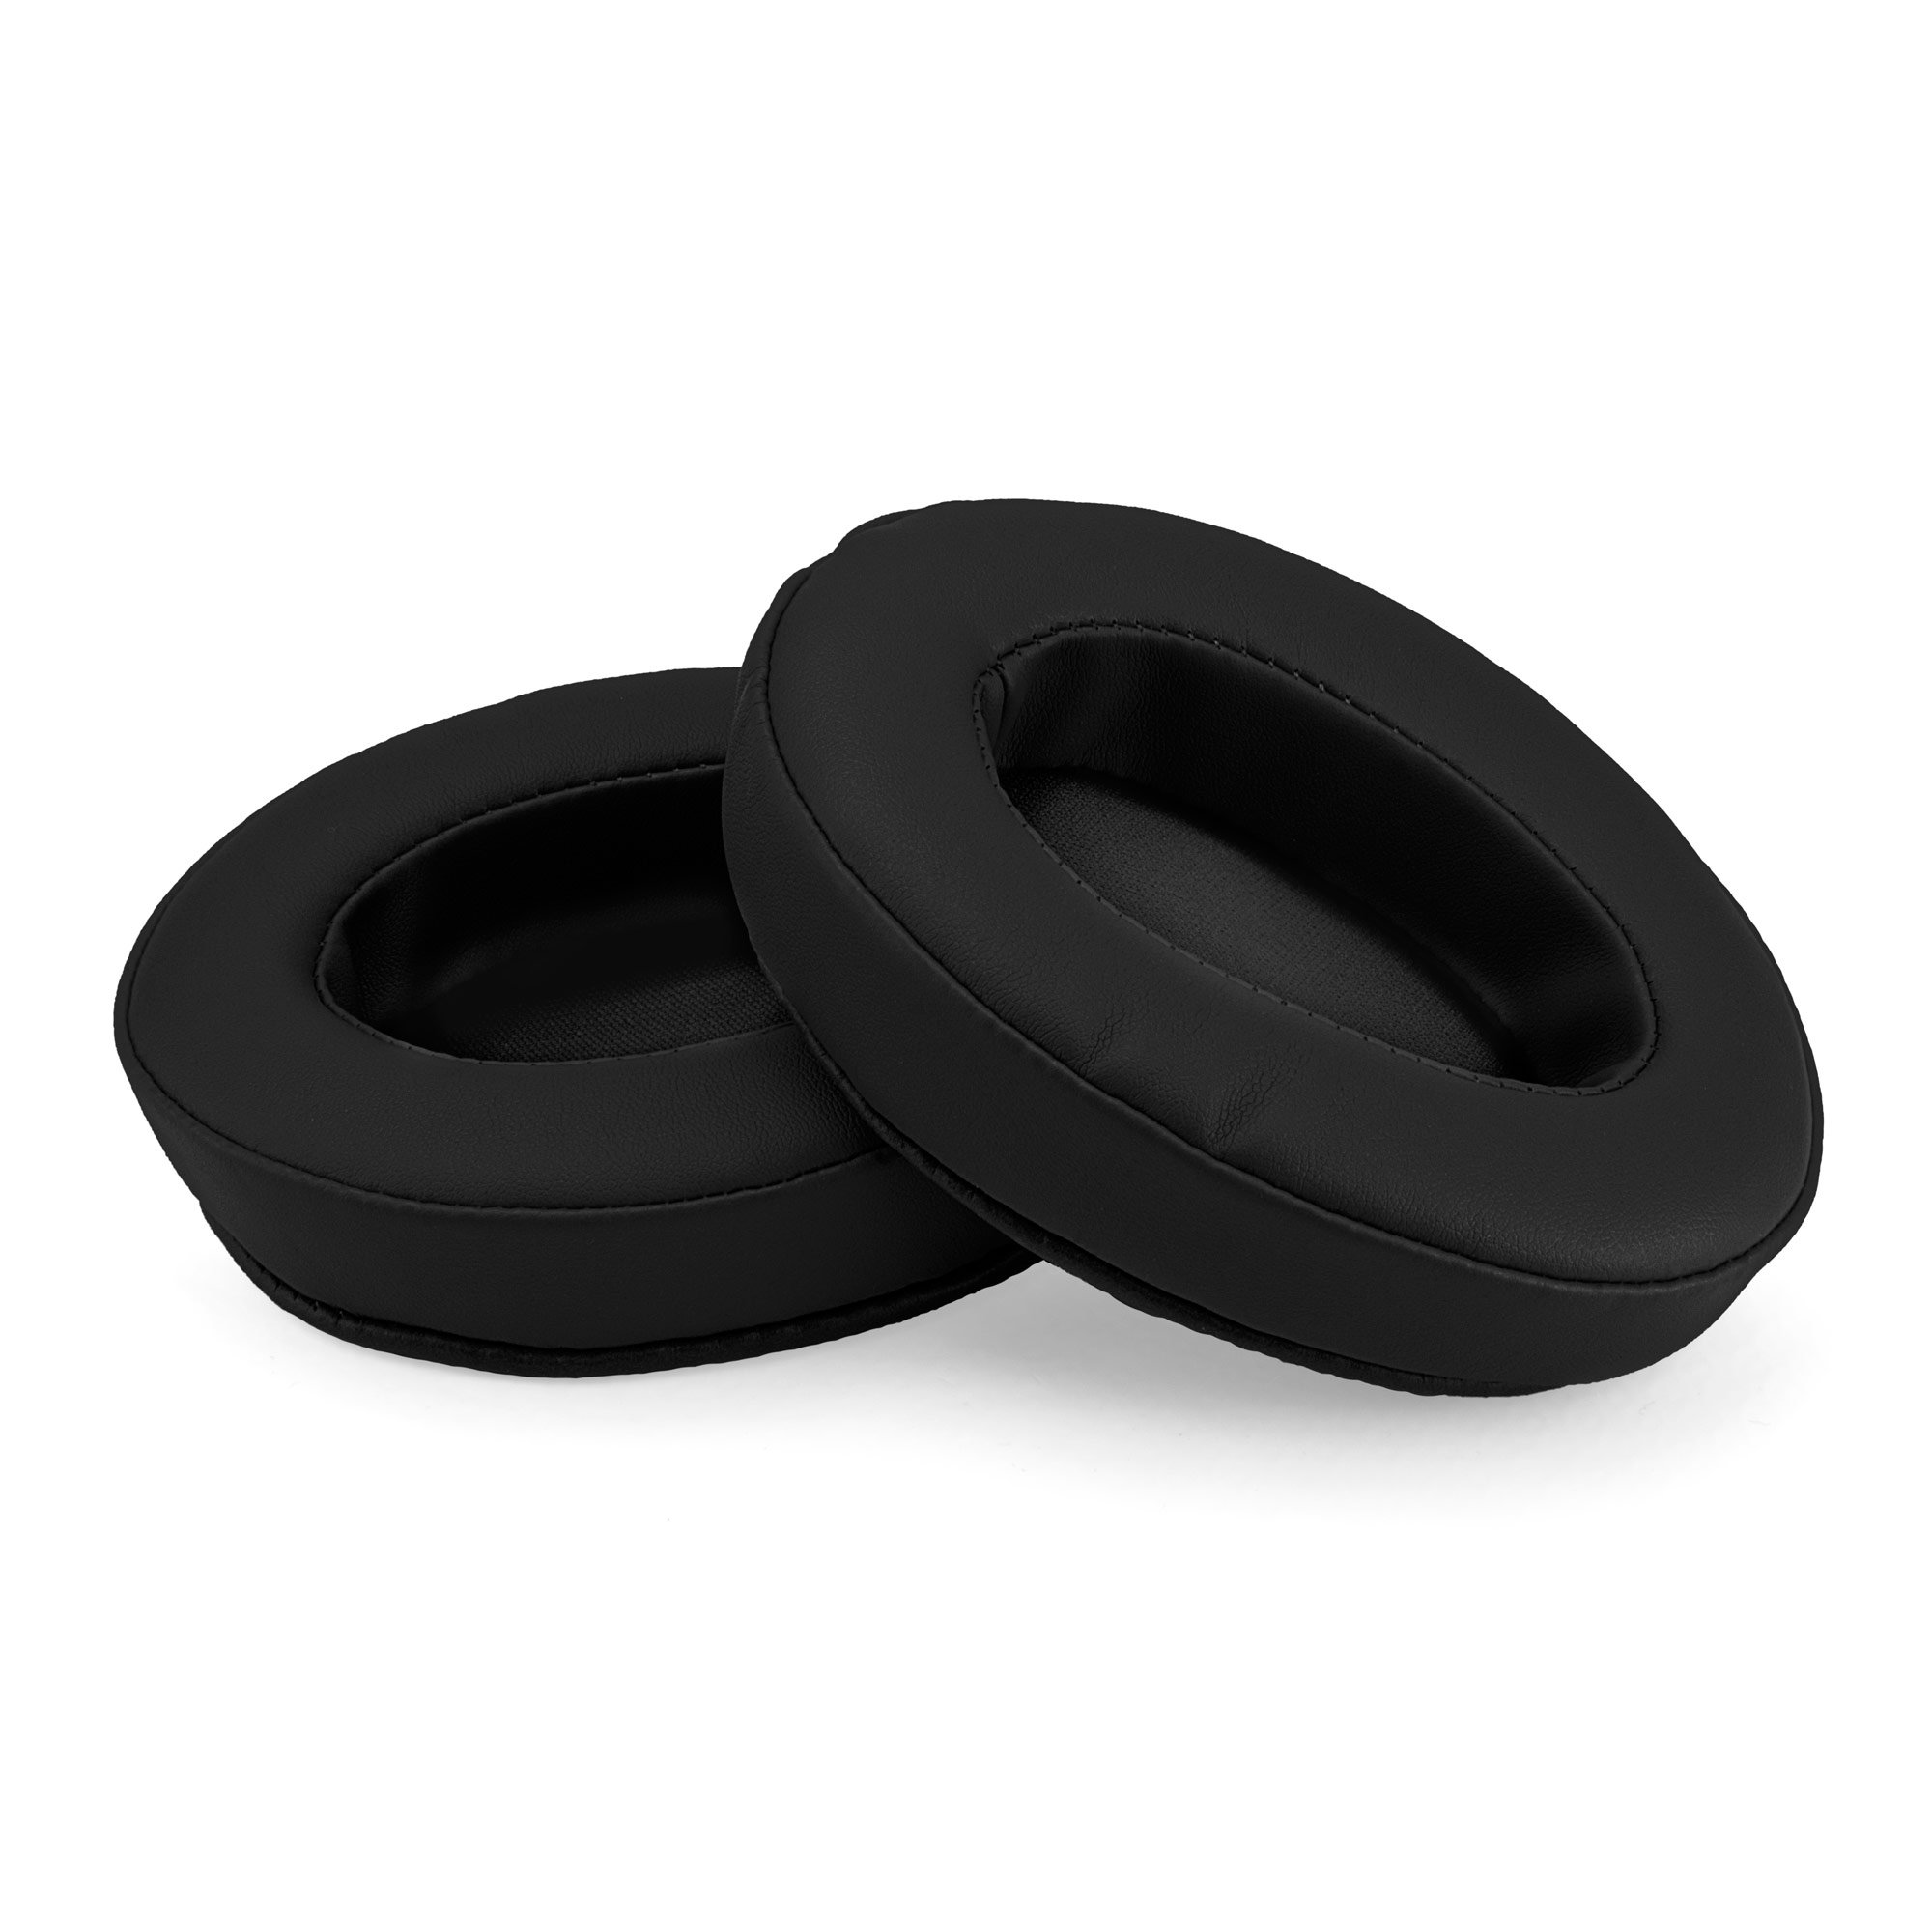 Brainwavz Replacement Memory Foam Earpads - Suitable For Many Other Large Over The Ear Headphones - AKG, HifiMan, ATH, Philips, Fostex (Black)